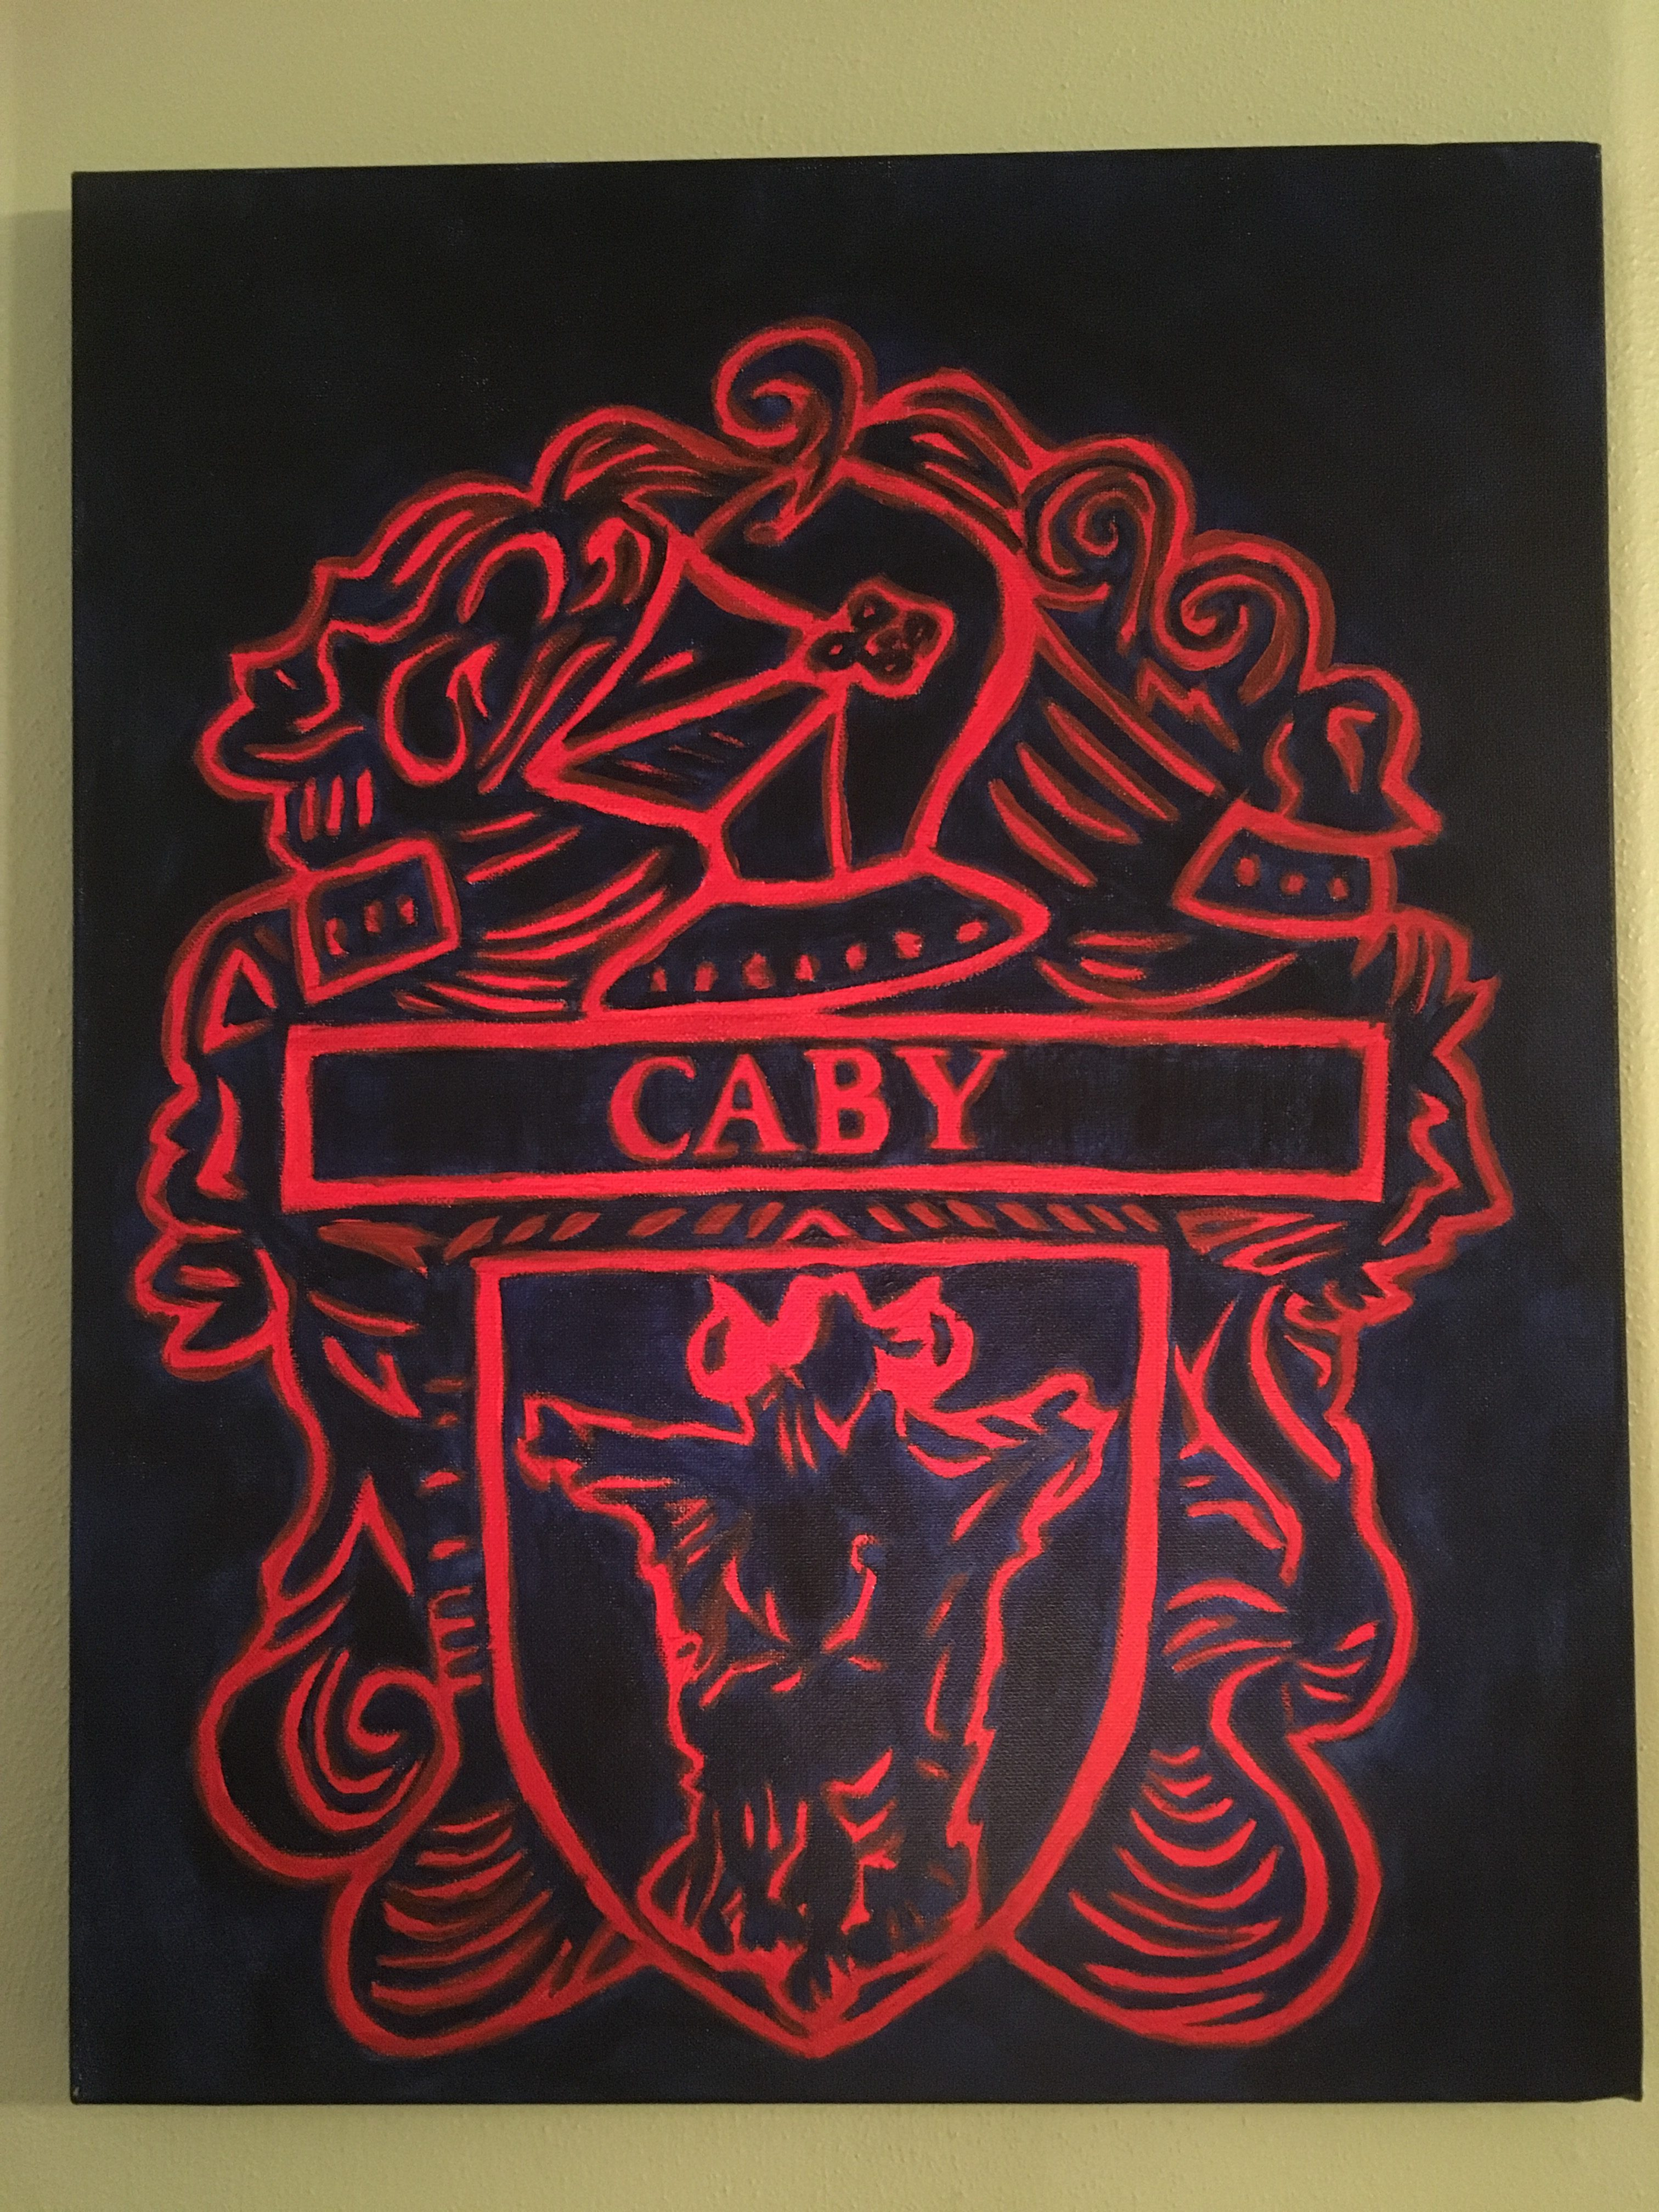 Caby crest painting, family crest painting